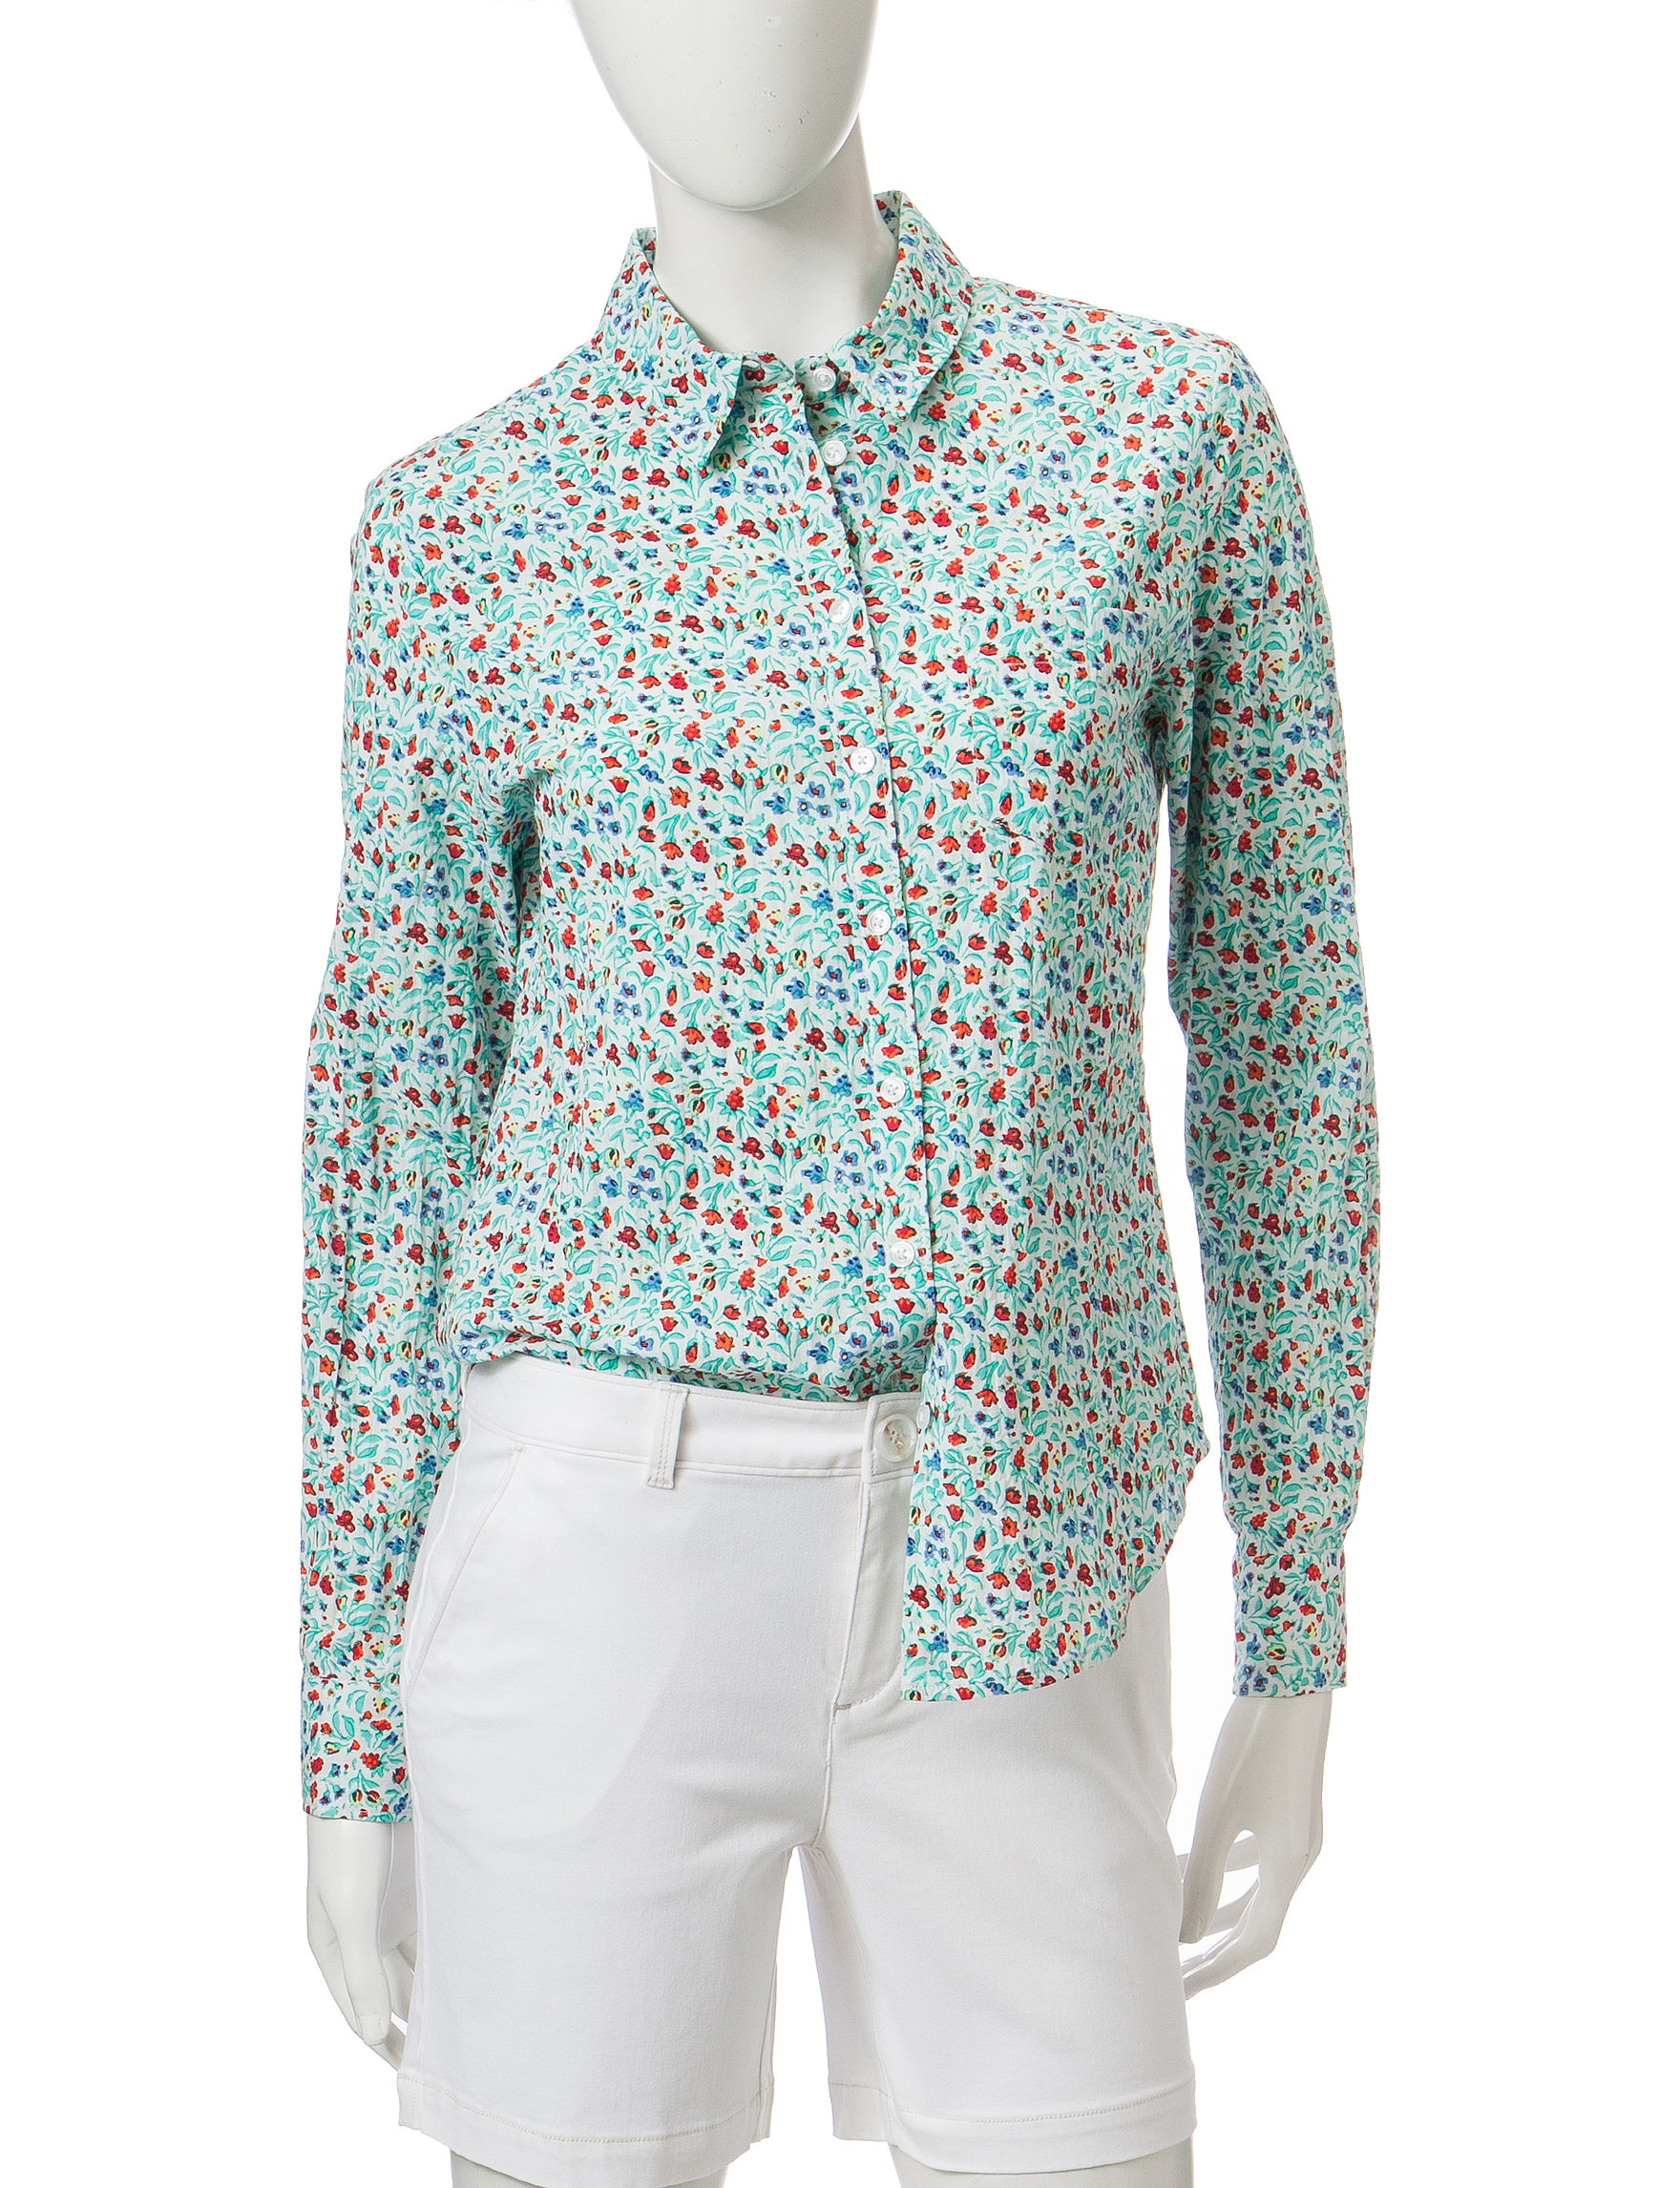 Dockers White Regular Shirts & Blouses